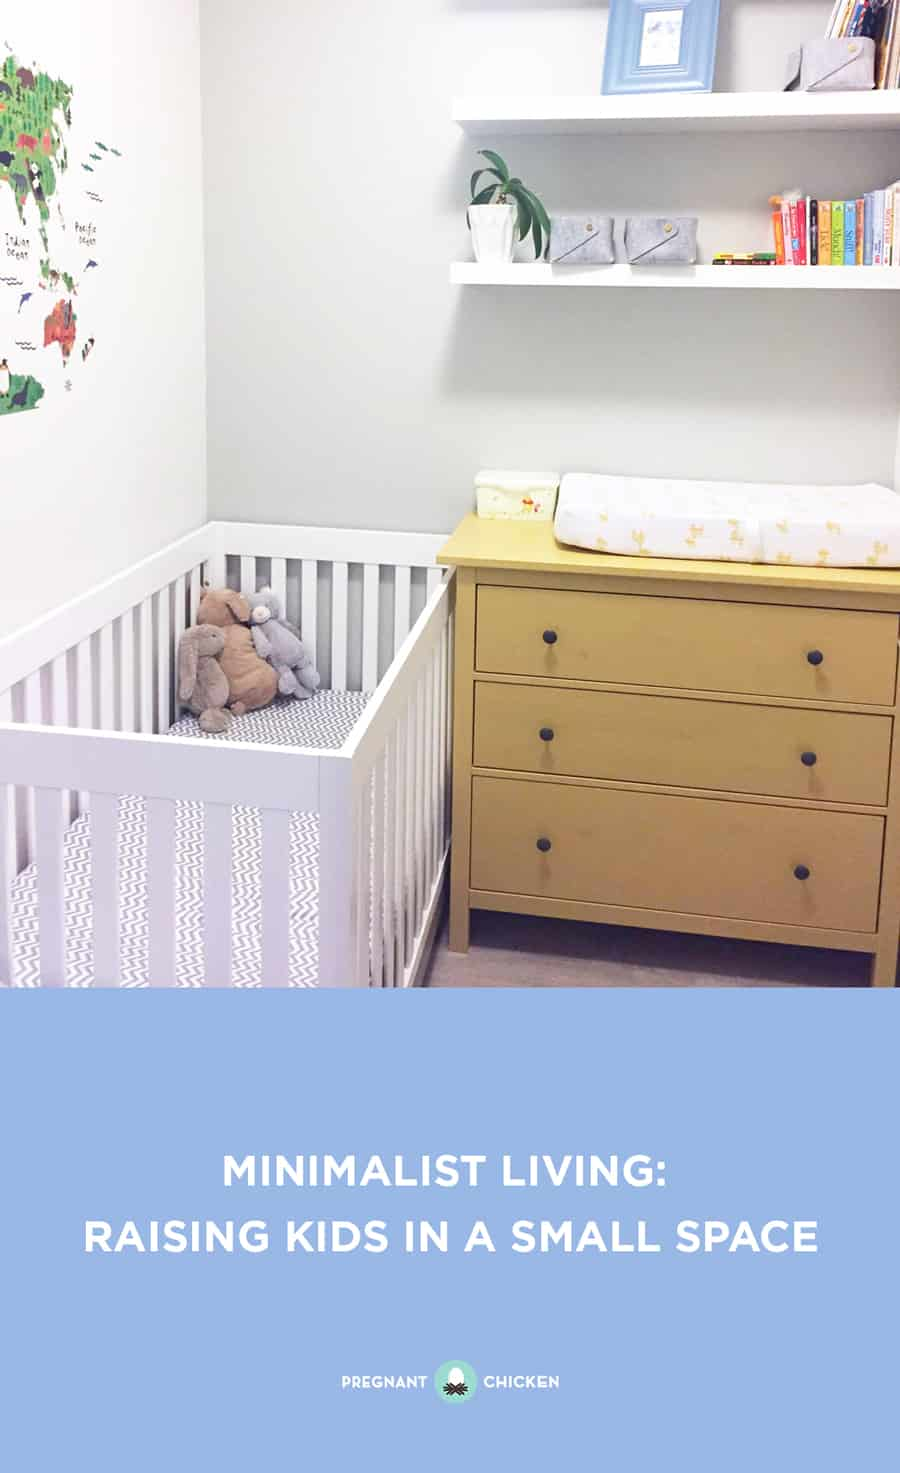 Living small doesn't mean you can't expand your family. From murphey beds to toy libraries, here are some pro tips about how to maximize your nursery space. #minimalistliving #smallnursery #smallliving #nurserylayout #nurserycloset